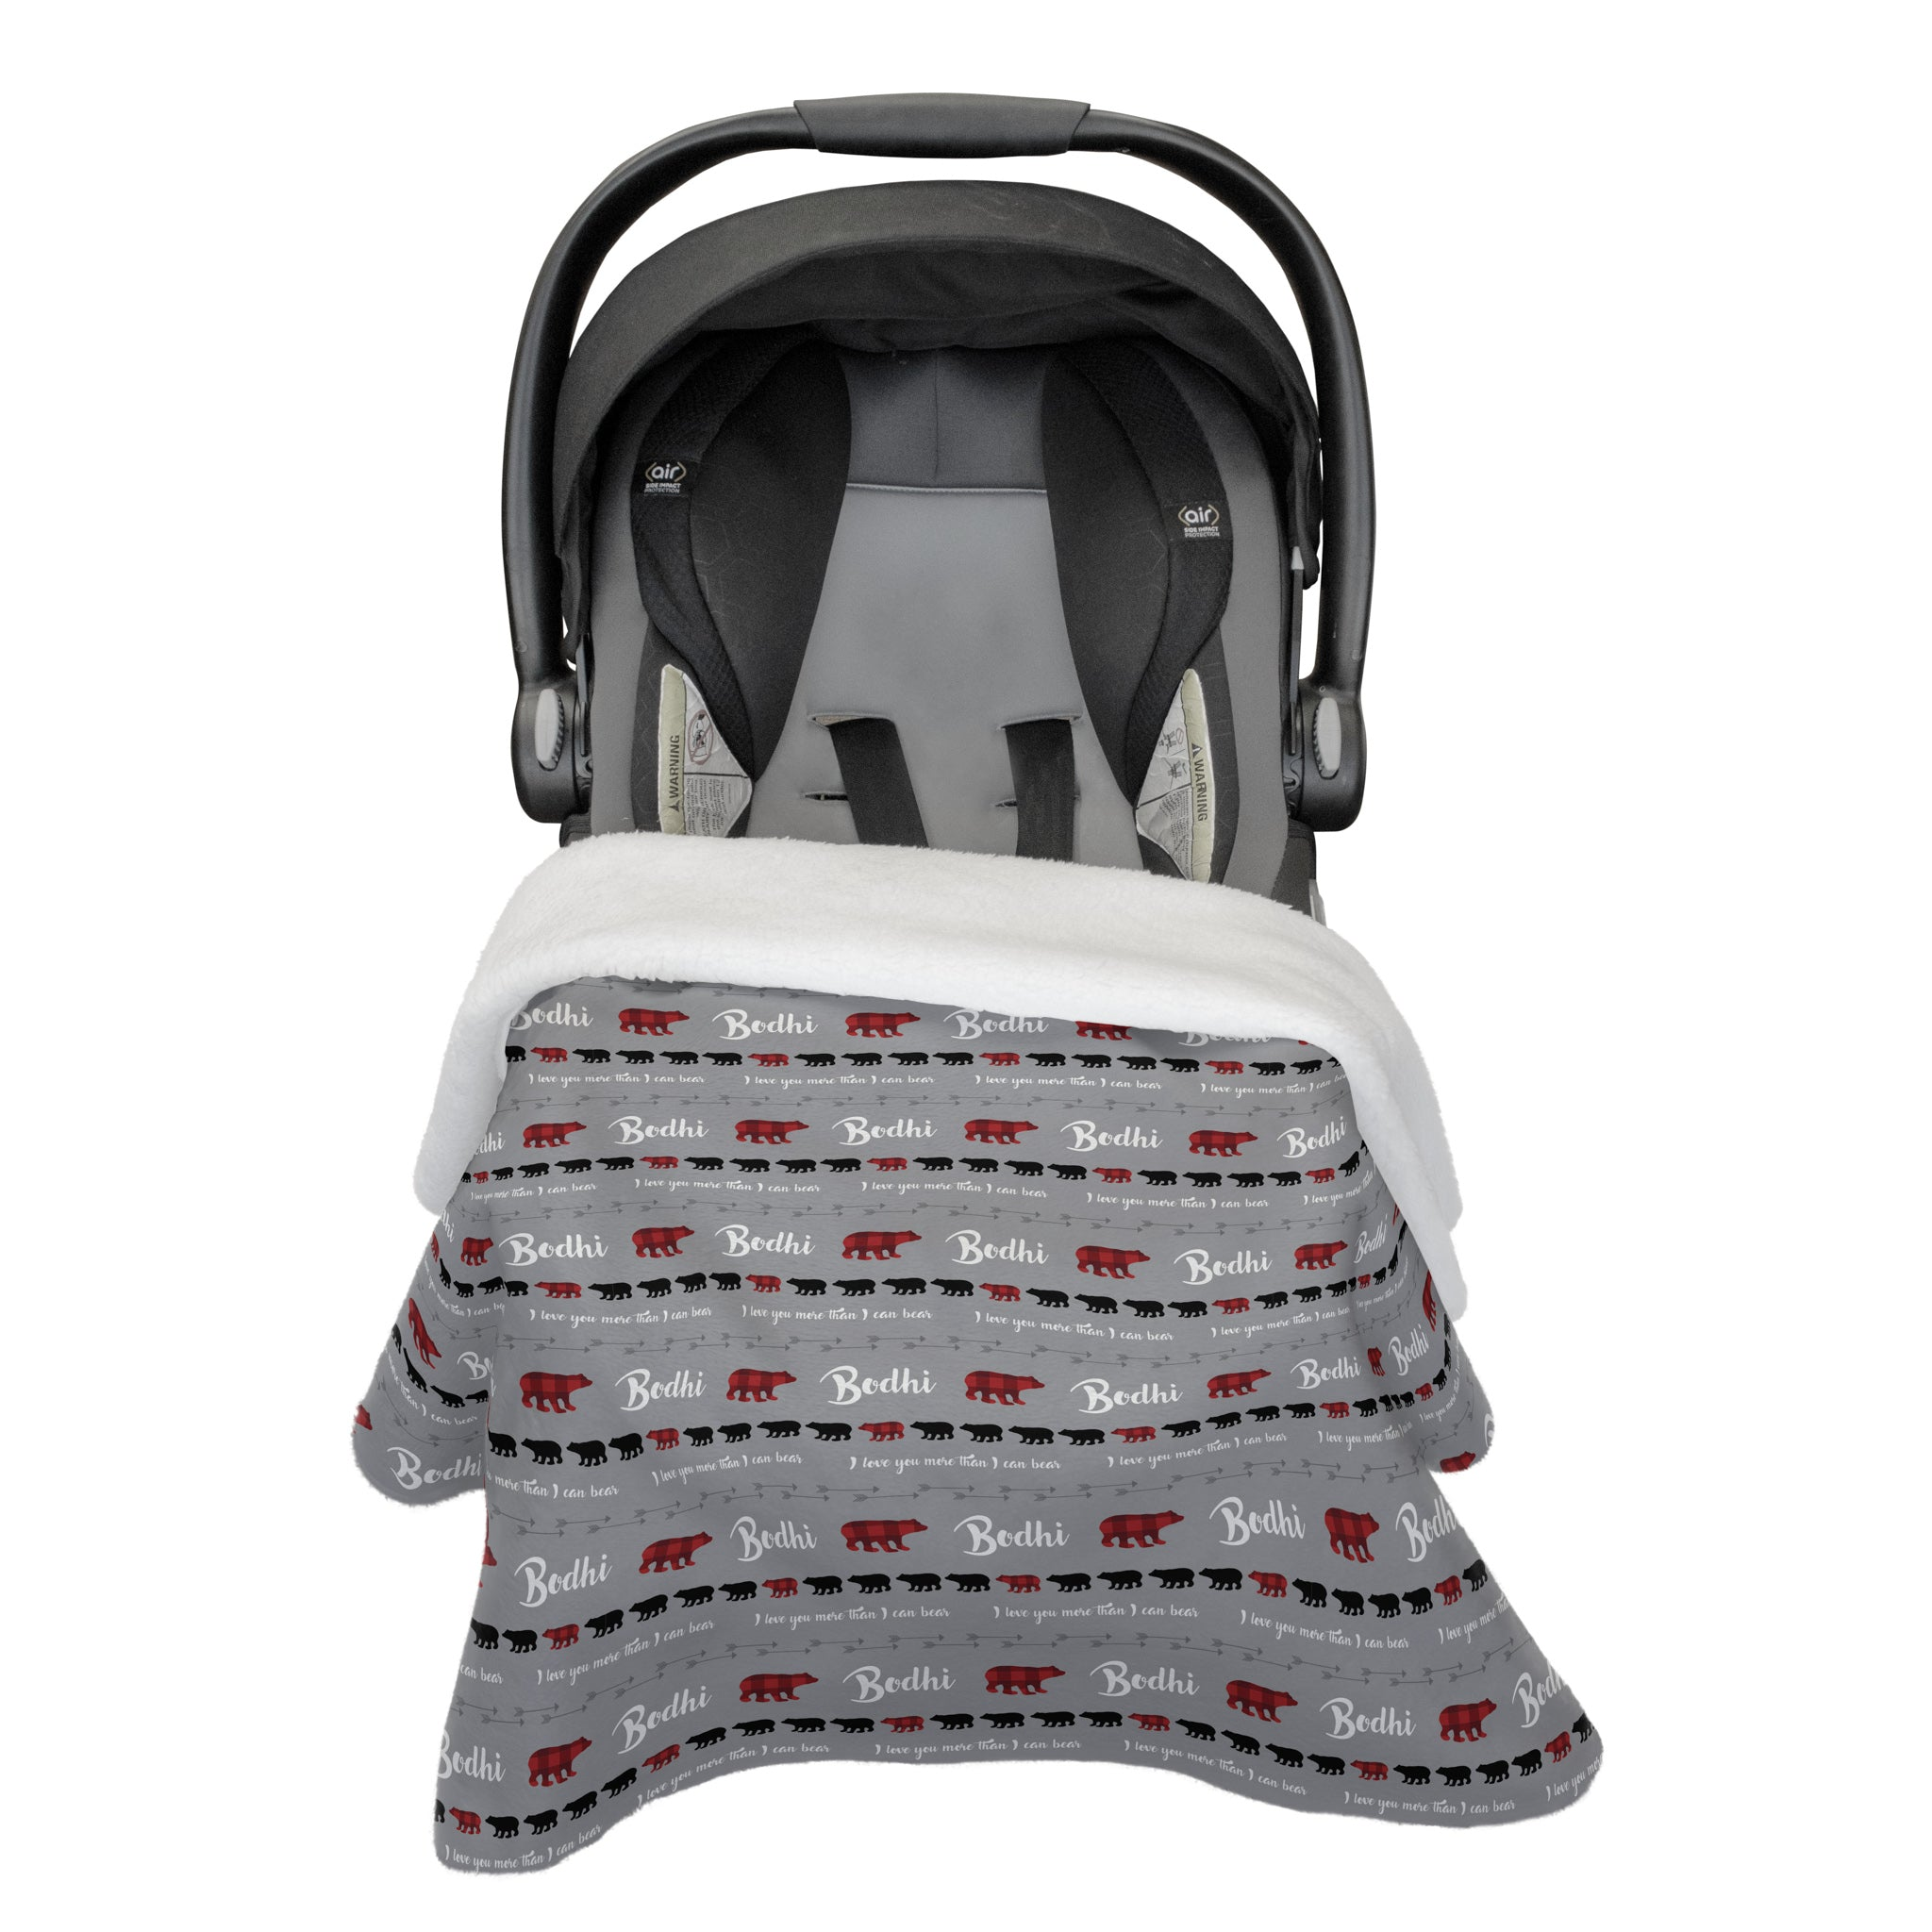 Bodhi's Bear Mountains Are Calling | Rose Garden | Car Seat Blanket